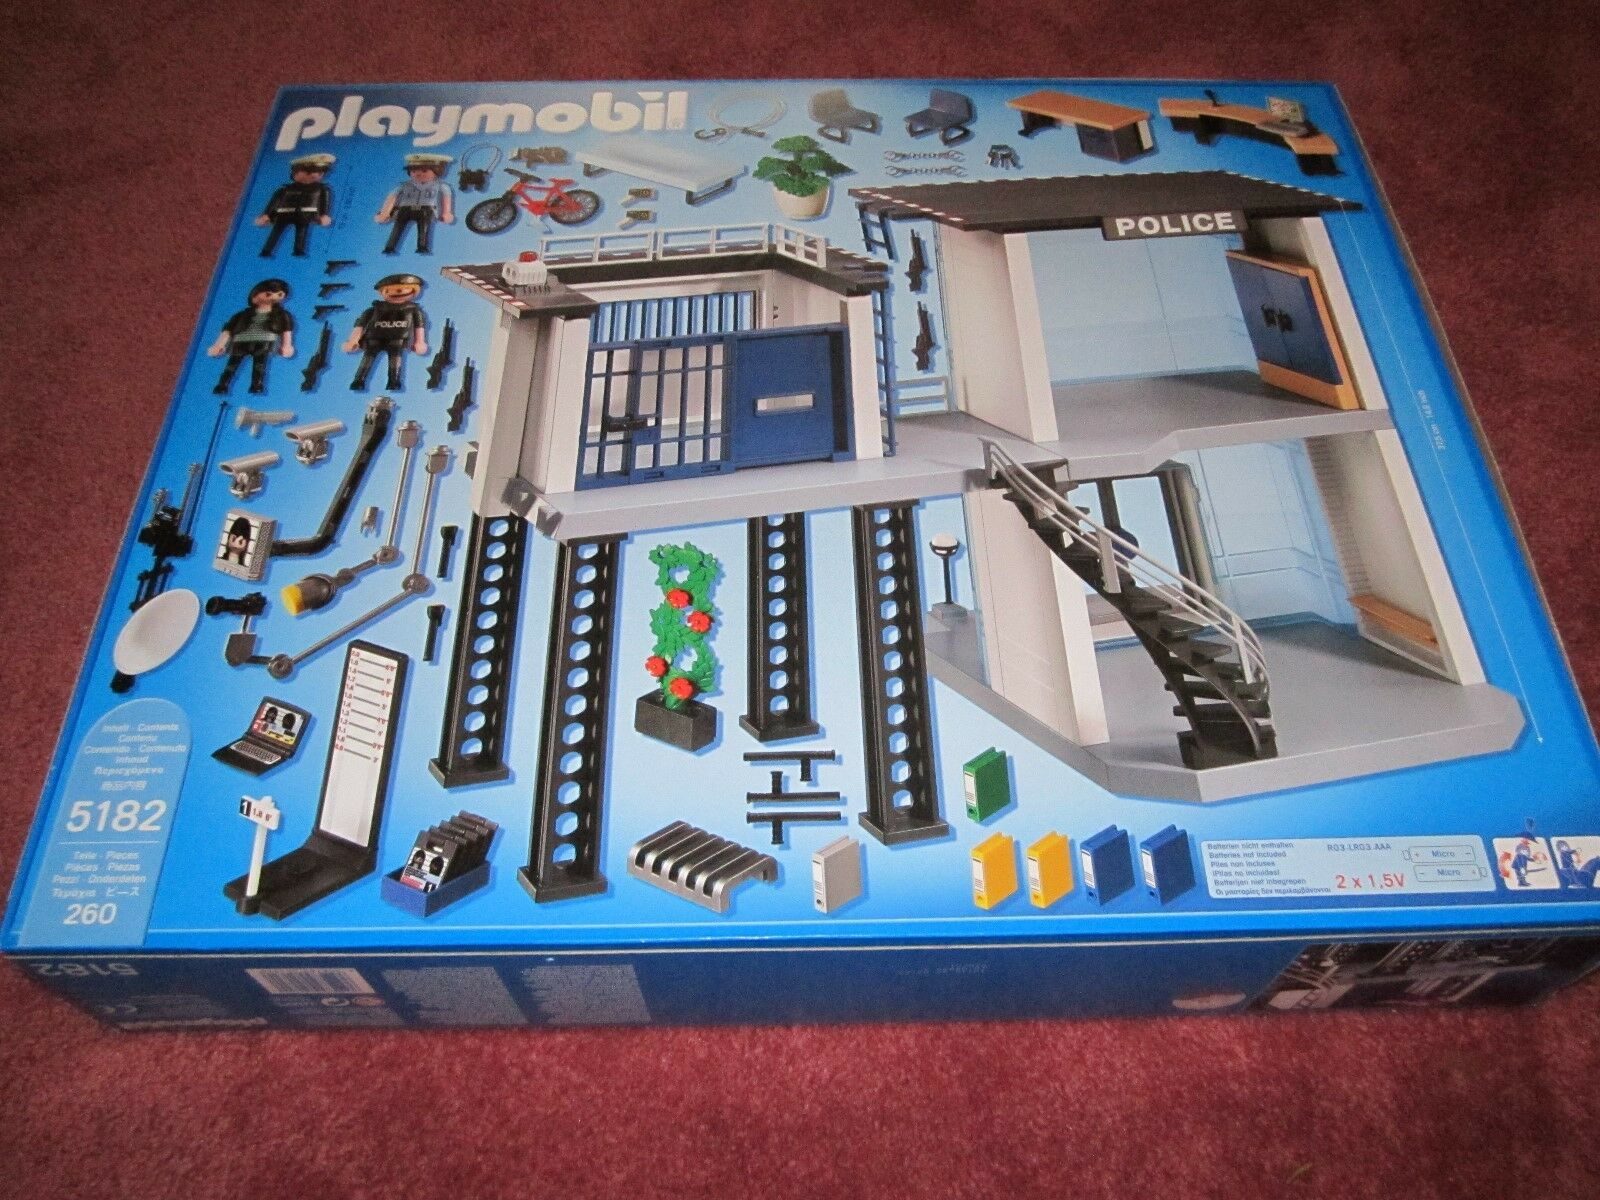 PLAYMOBIL CITY ACTION POLICE STATION WITH ALARM ALARM ALARM SYSTEM 5182 - SEE PHOTOS - NEW 380951